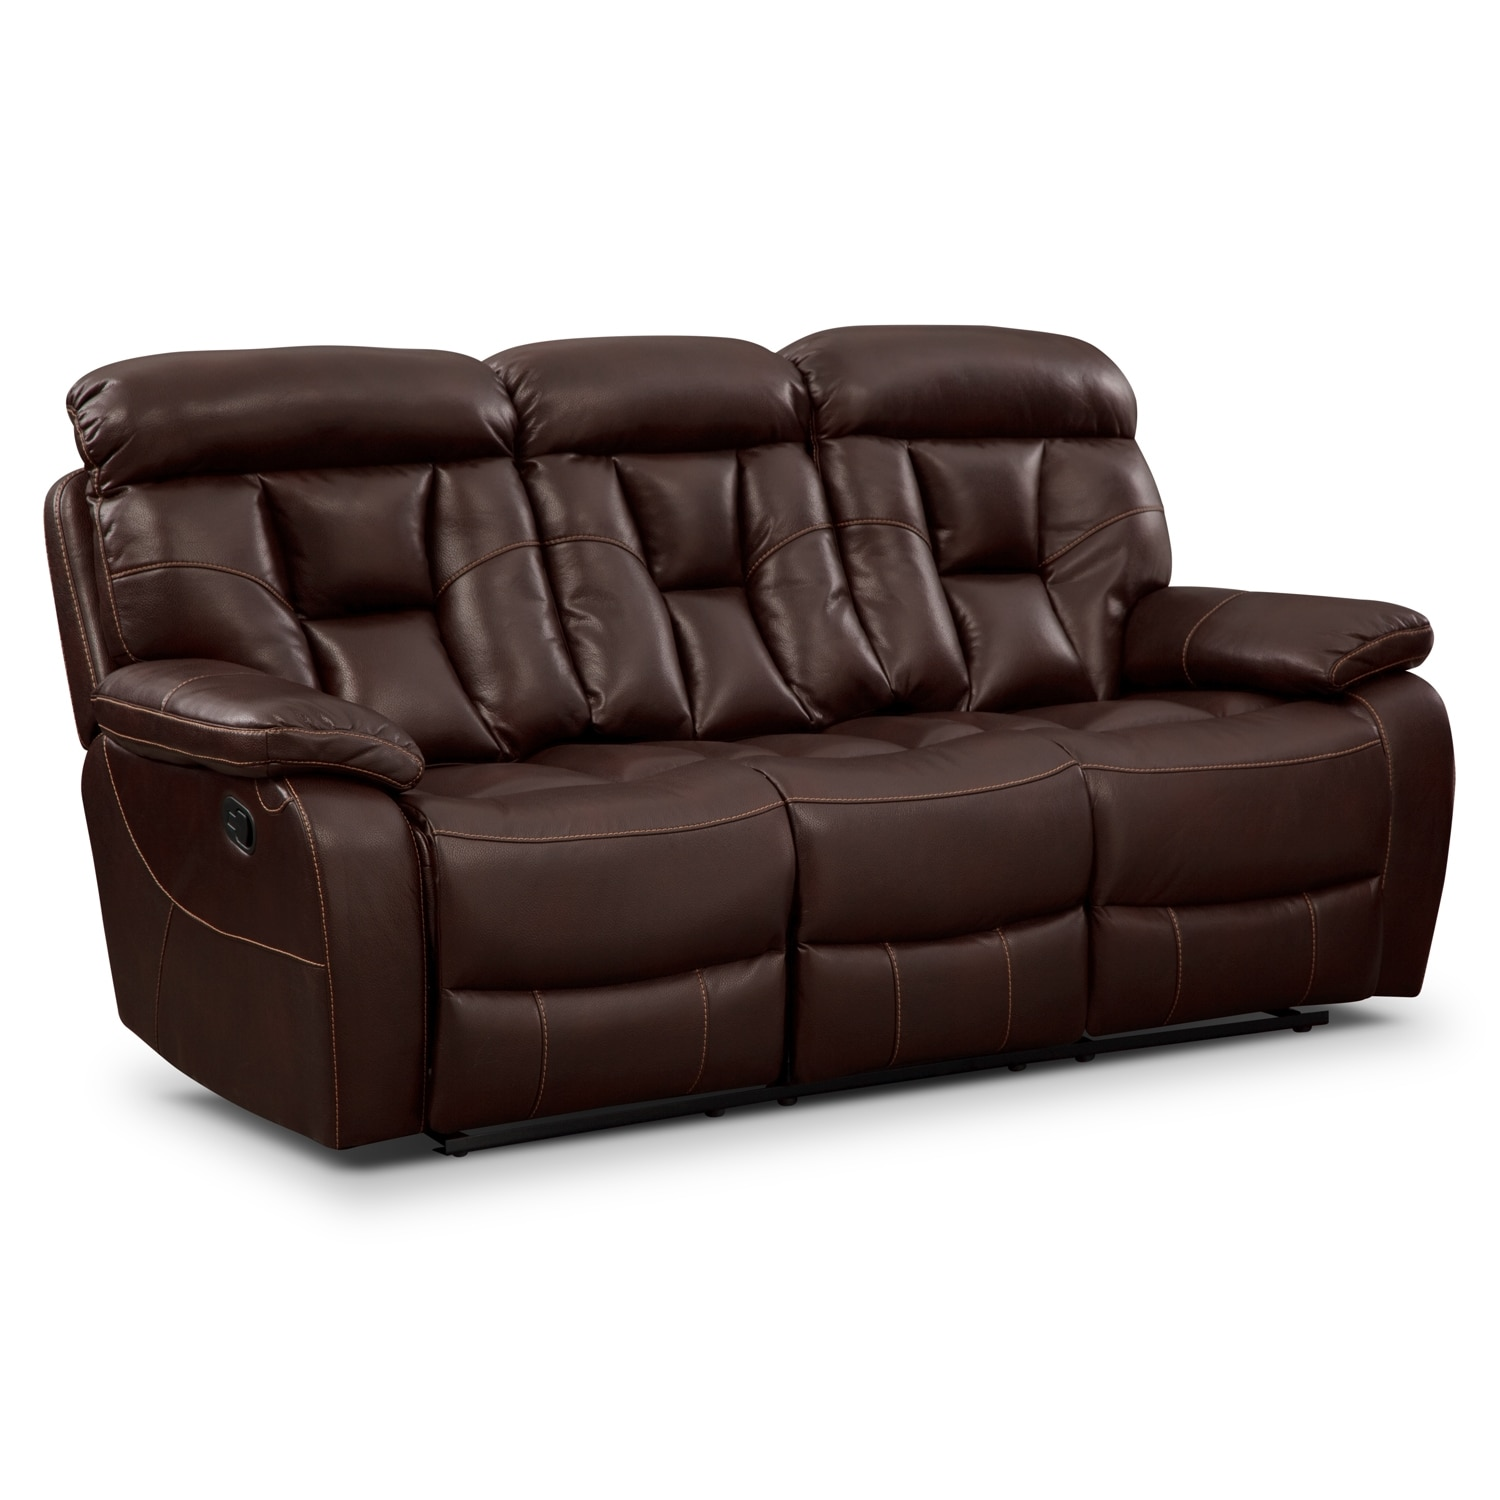 Dakota reclining sofa java american signature furniture Loveseats that recline